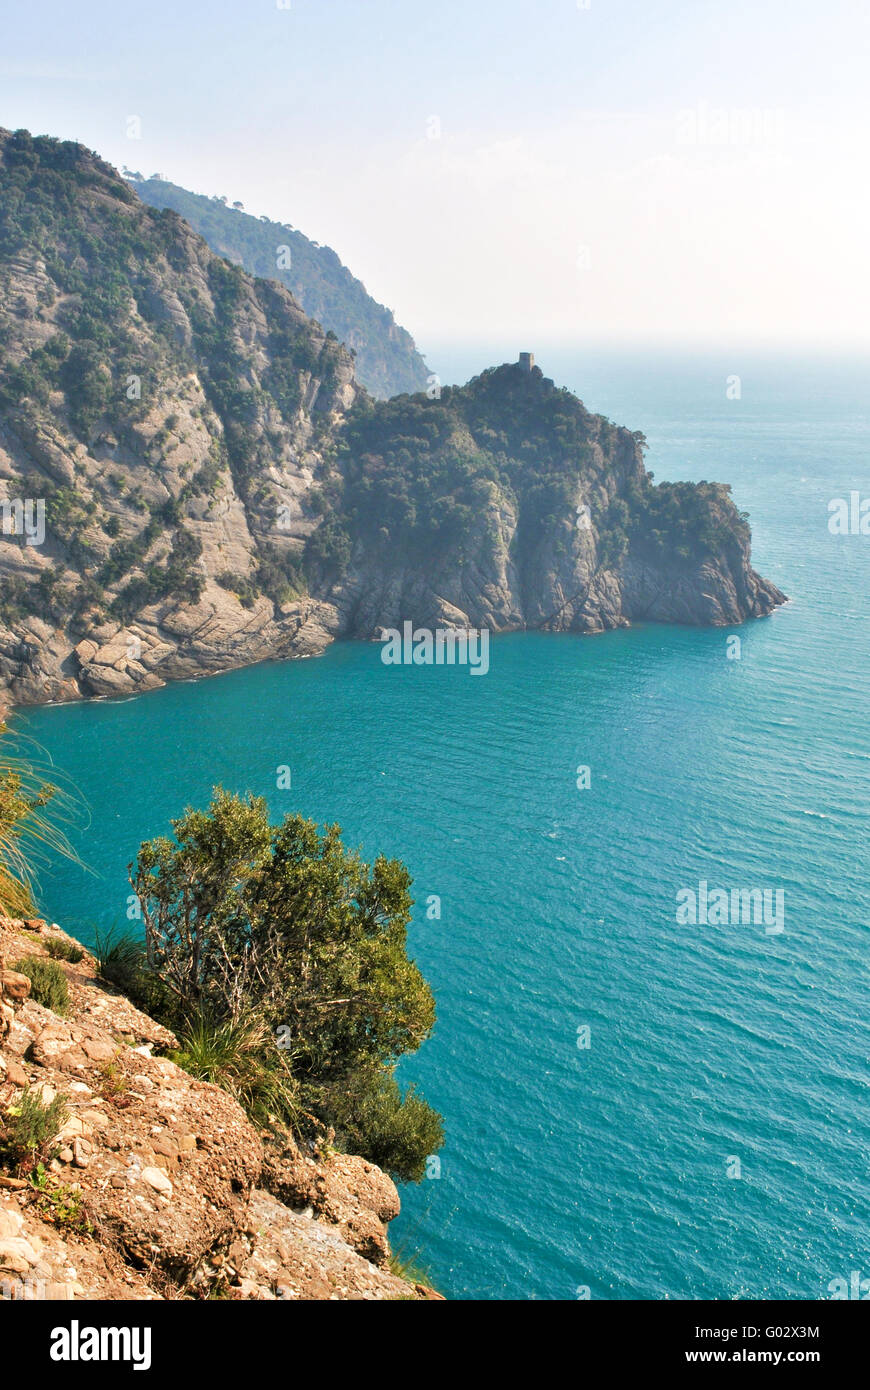 Scenic landscape from a track across the promontory of Portofino - Stock Image